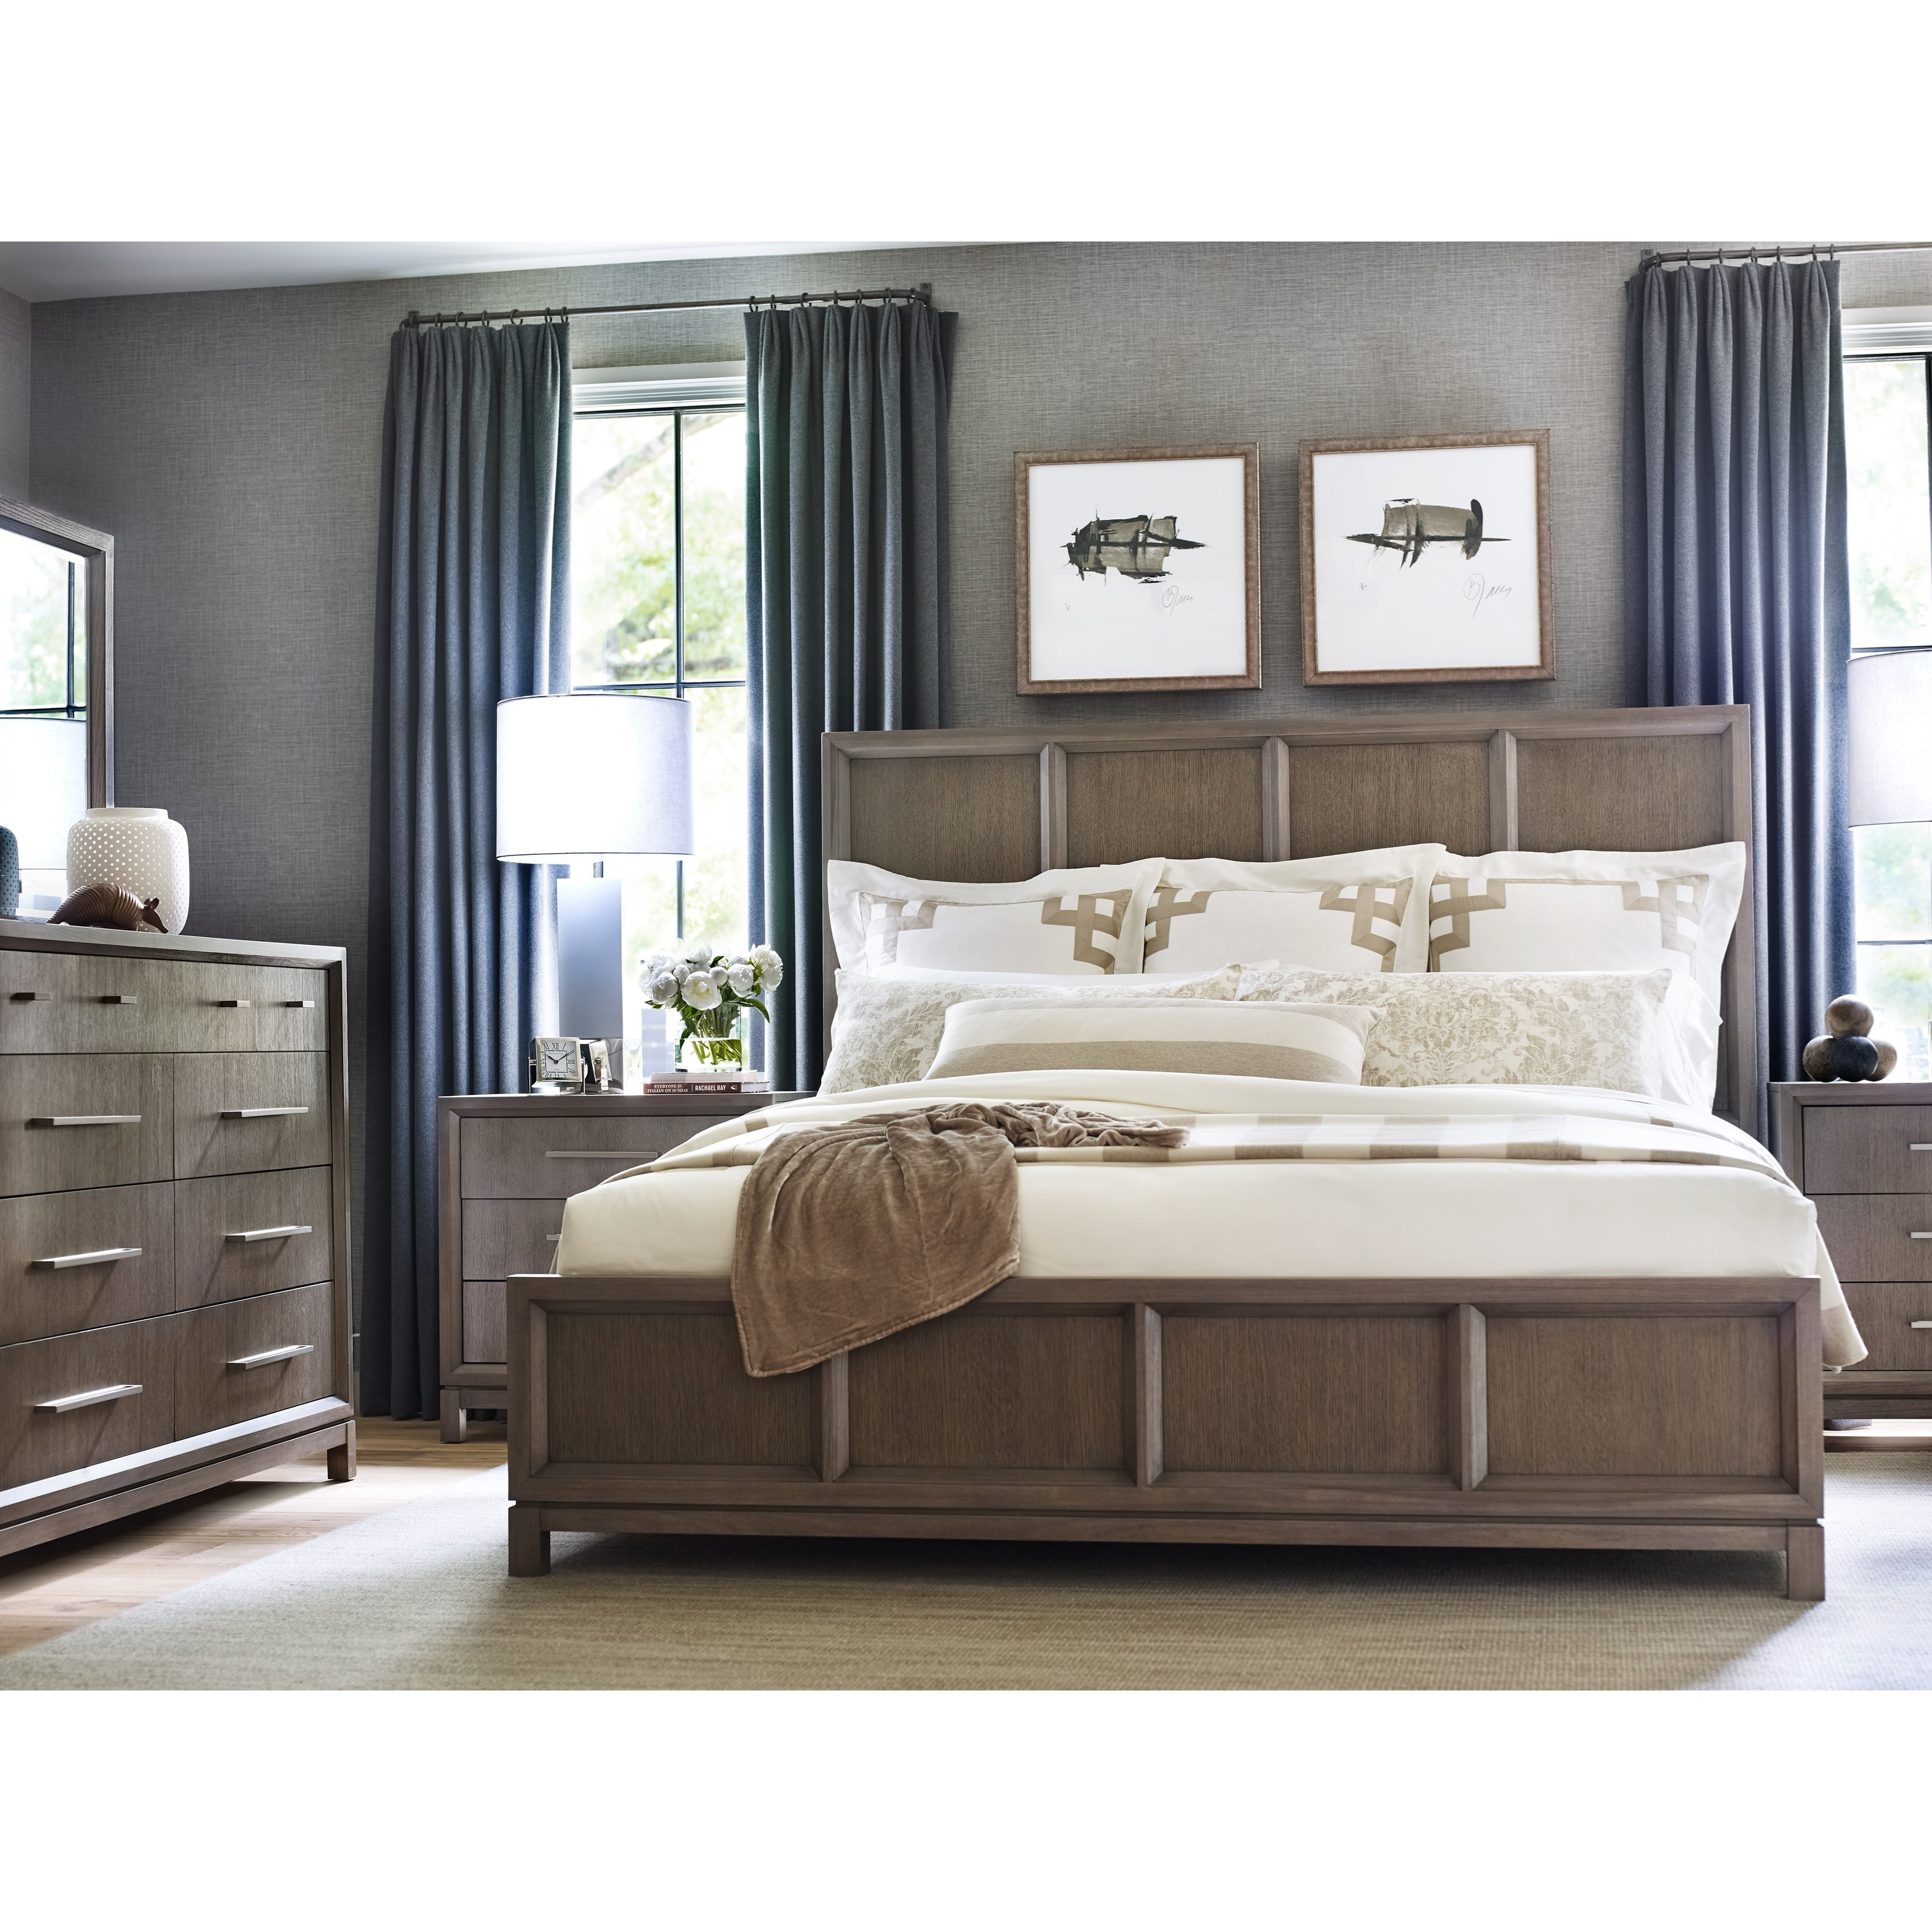 Rachael Ray Home High Line King Bedroom Group - Item Number: 6000 K Bedroom Group 1